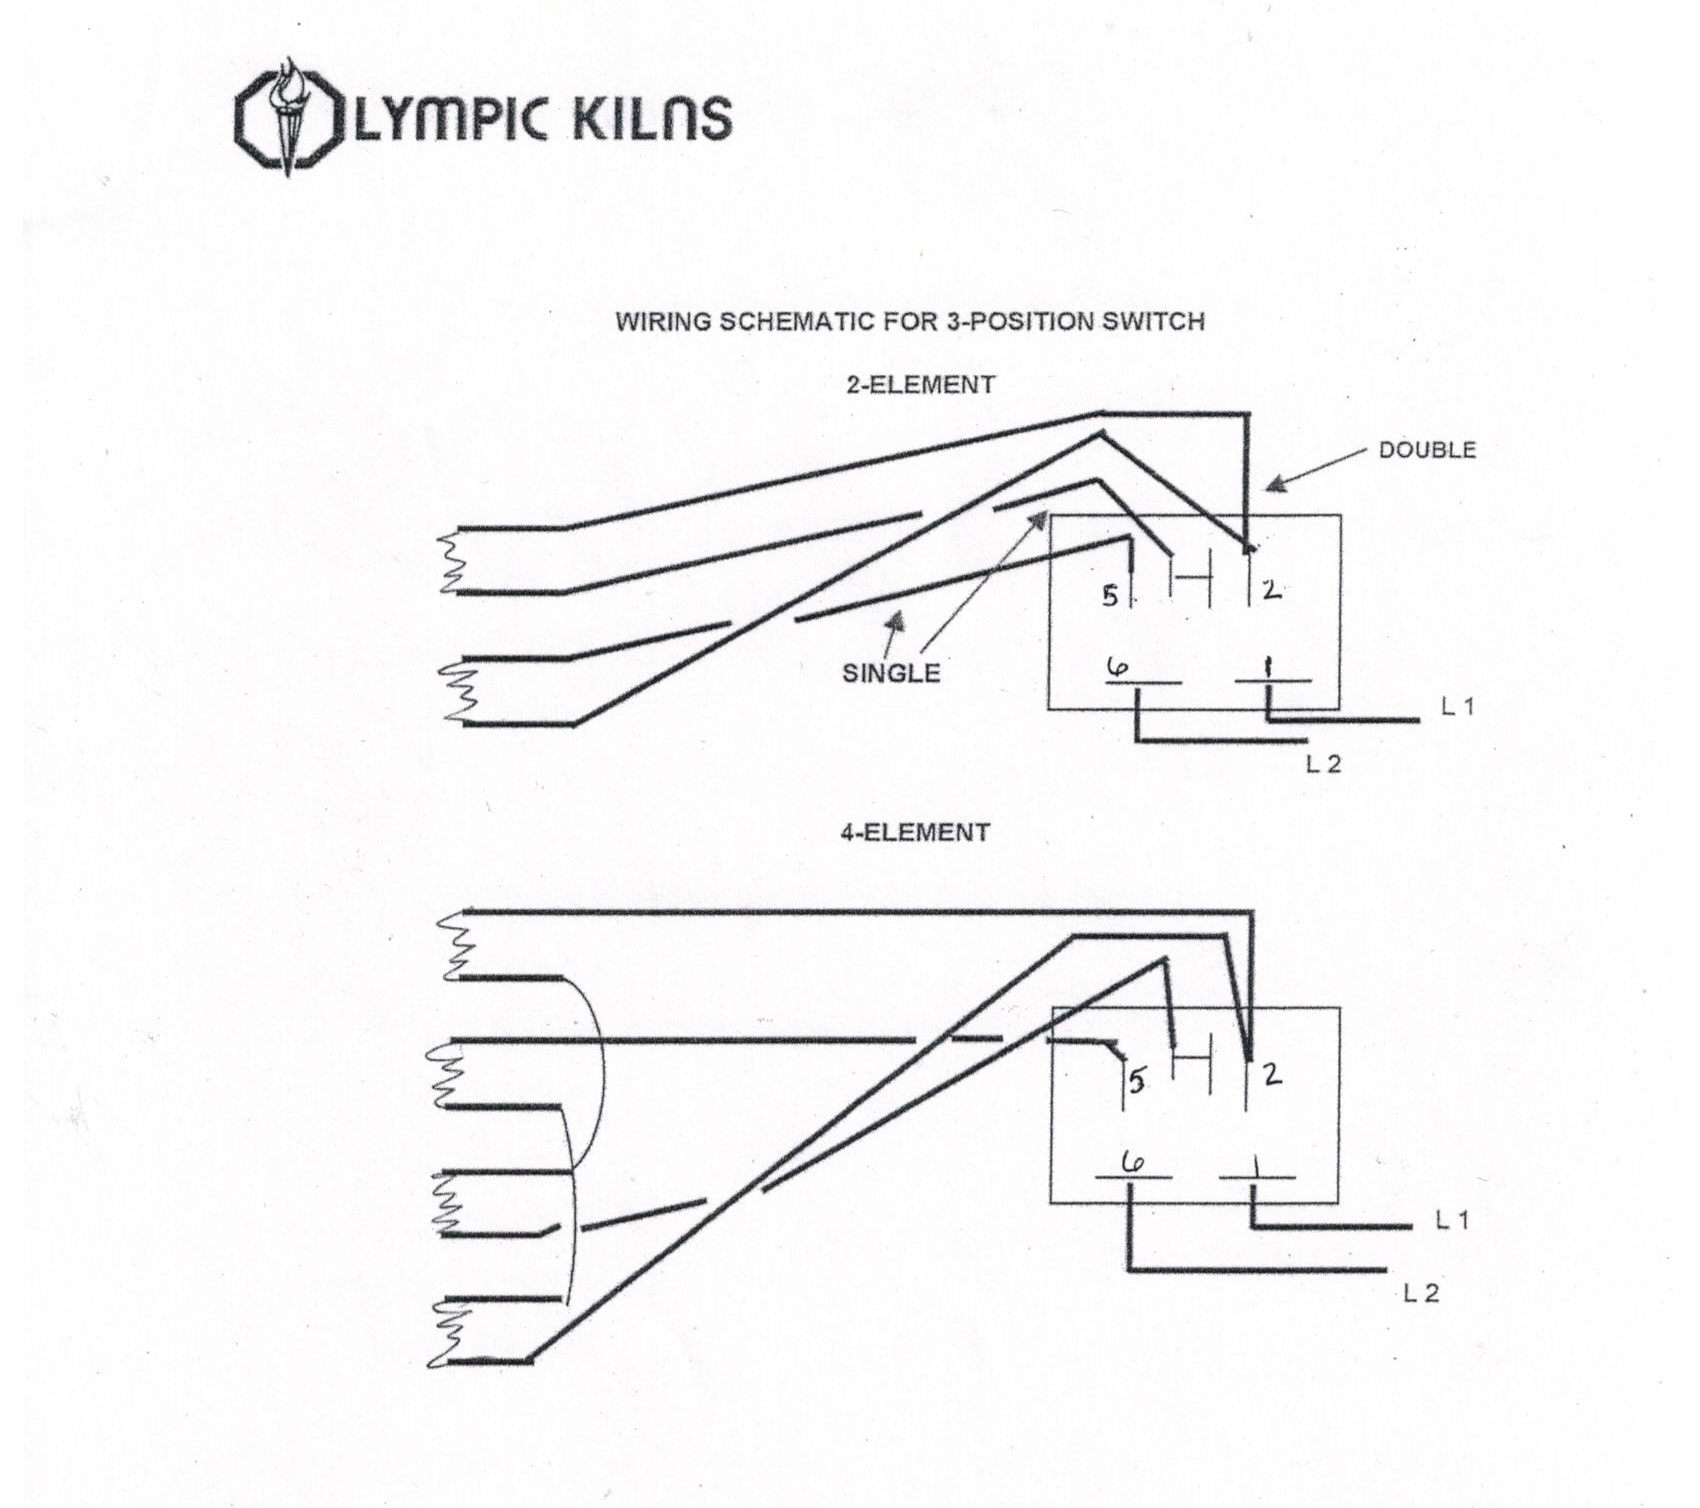 duncan kiln wiring diagram labeled eye disease all generic parts of high quality clay king com 3 position switch 120v 240v schematic